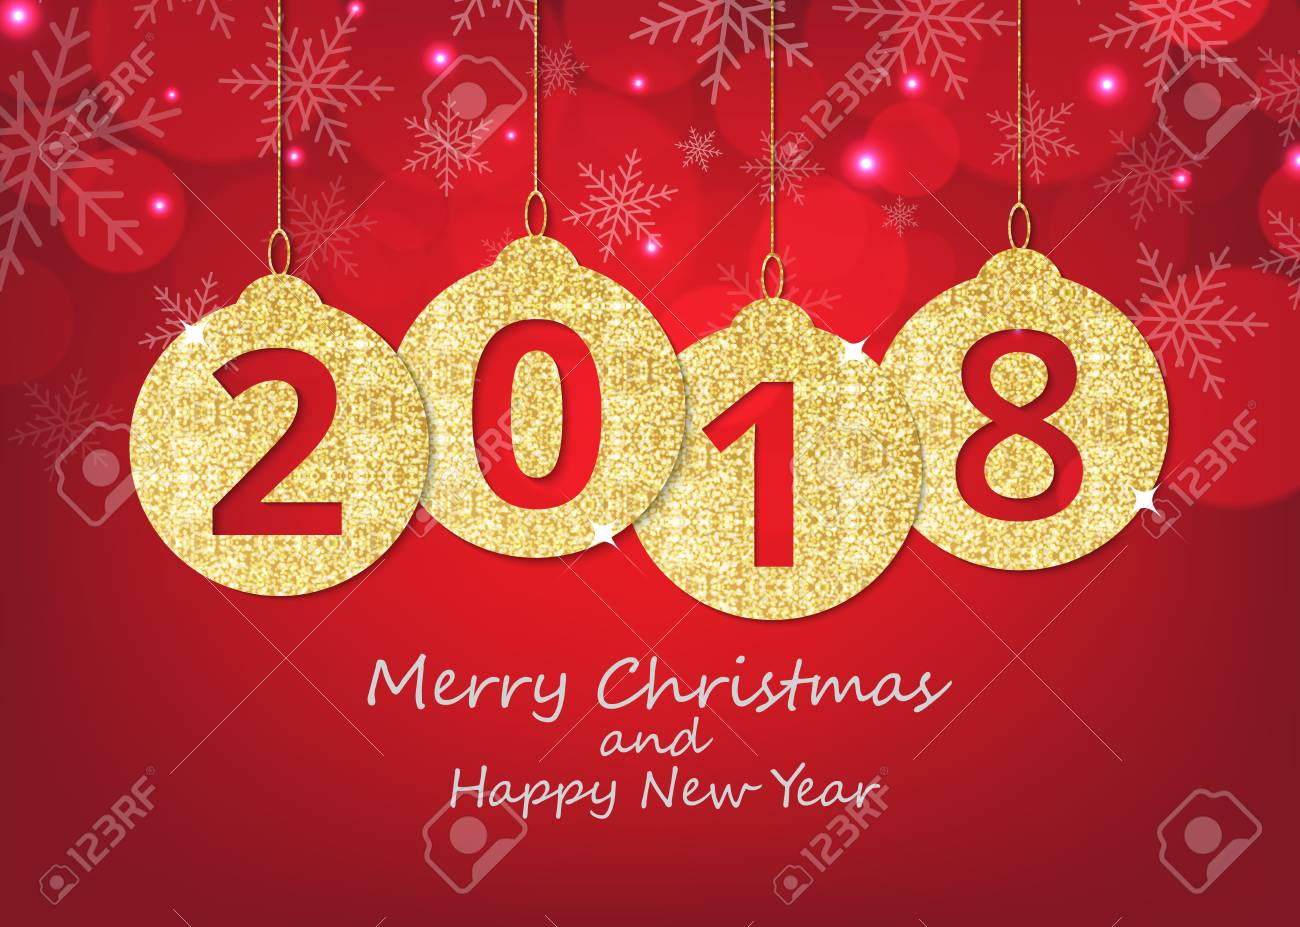 Merry christmas and happy new year hanging 2018 number glitter merry christmas and happy new year hanging 2018 number glitter balls on shiny red background m4hsunfo